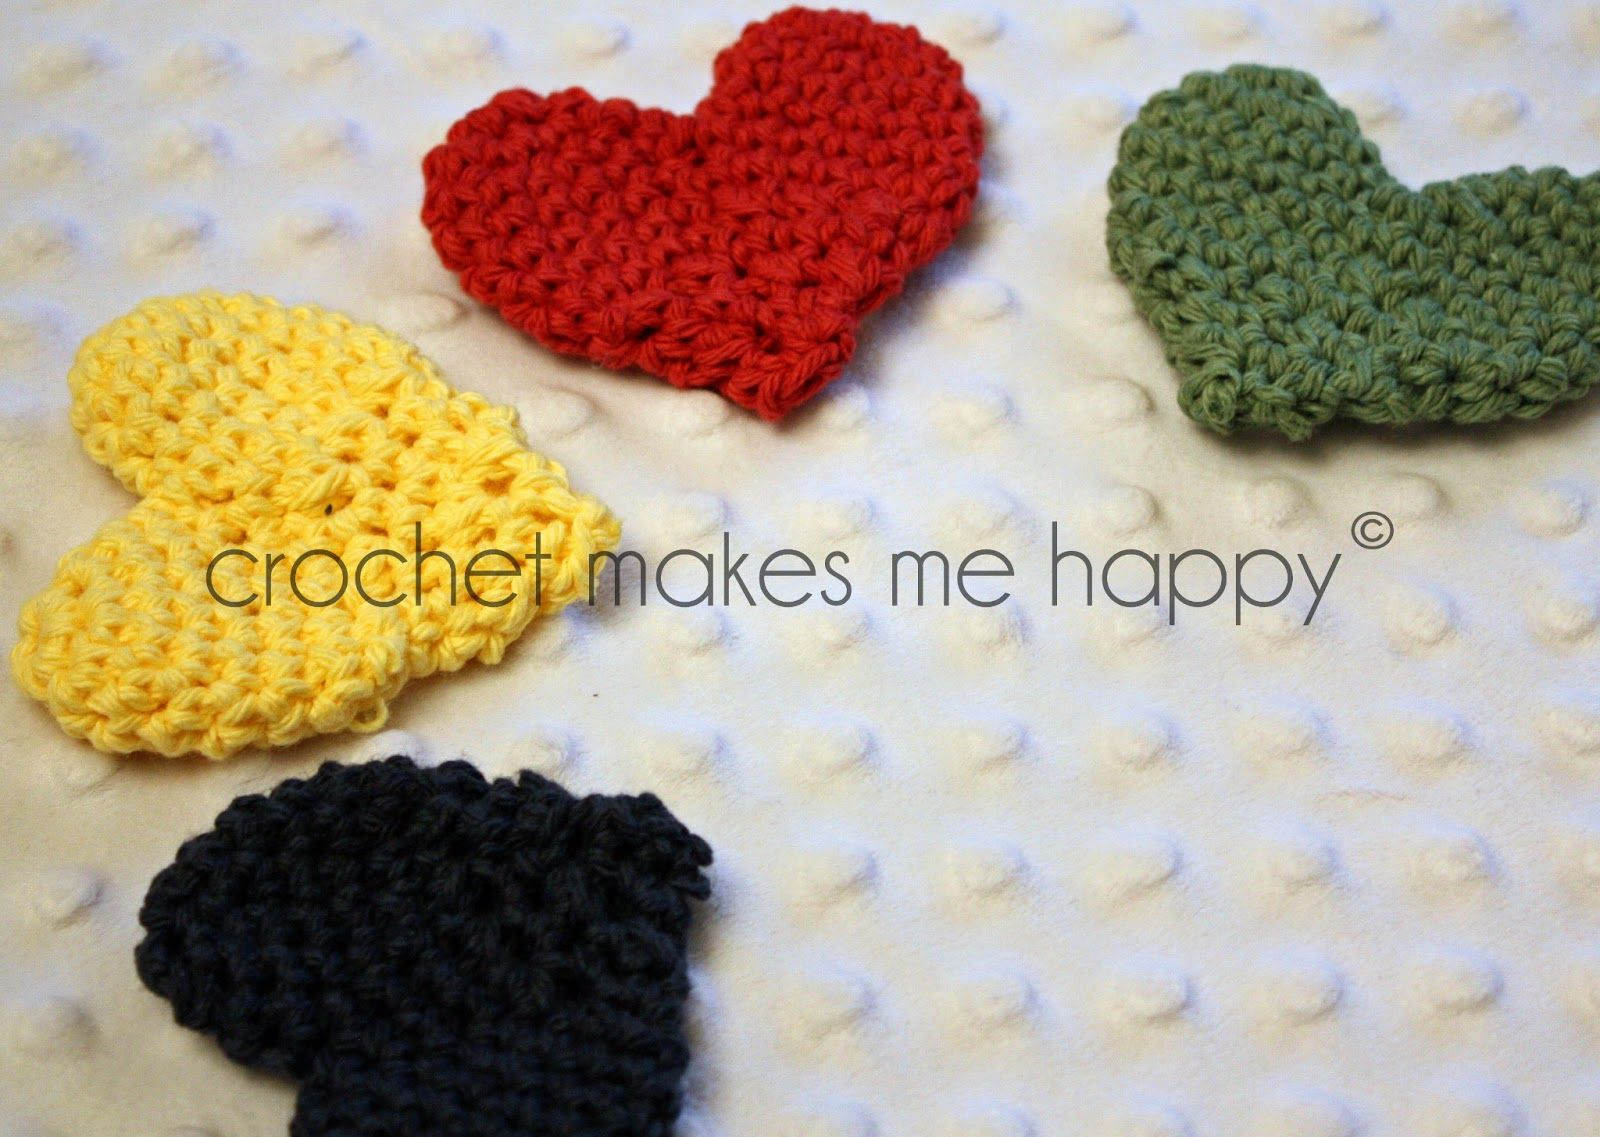 Crochet Pattern: The Heart Materials 100% 4 ply cotton yarn Size H ...